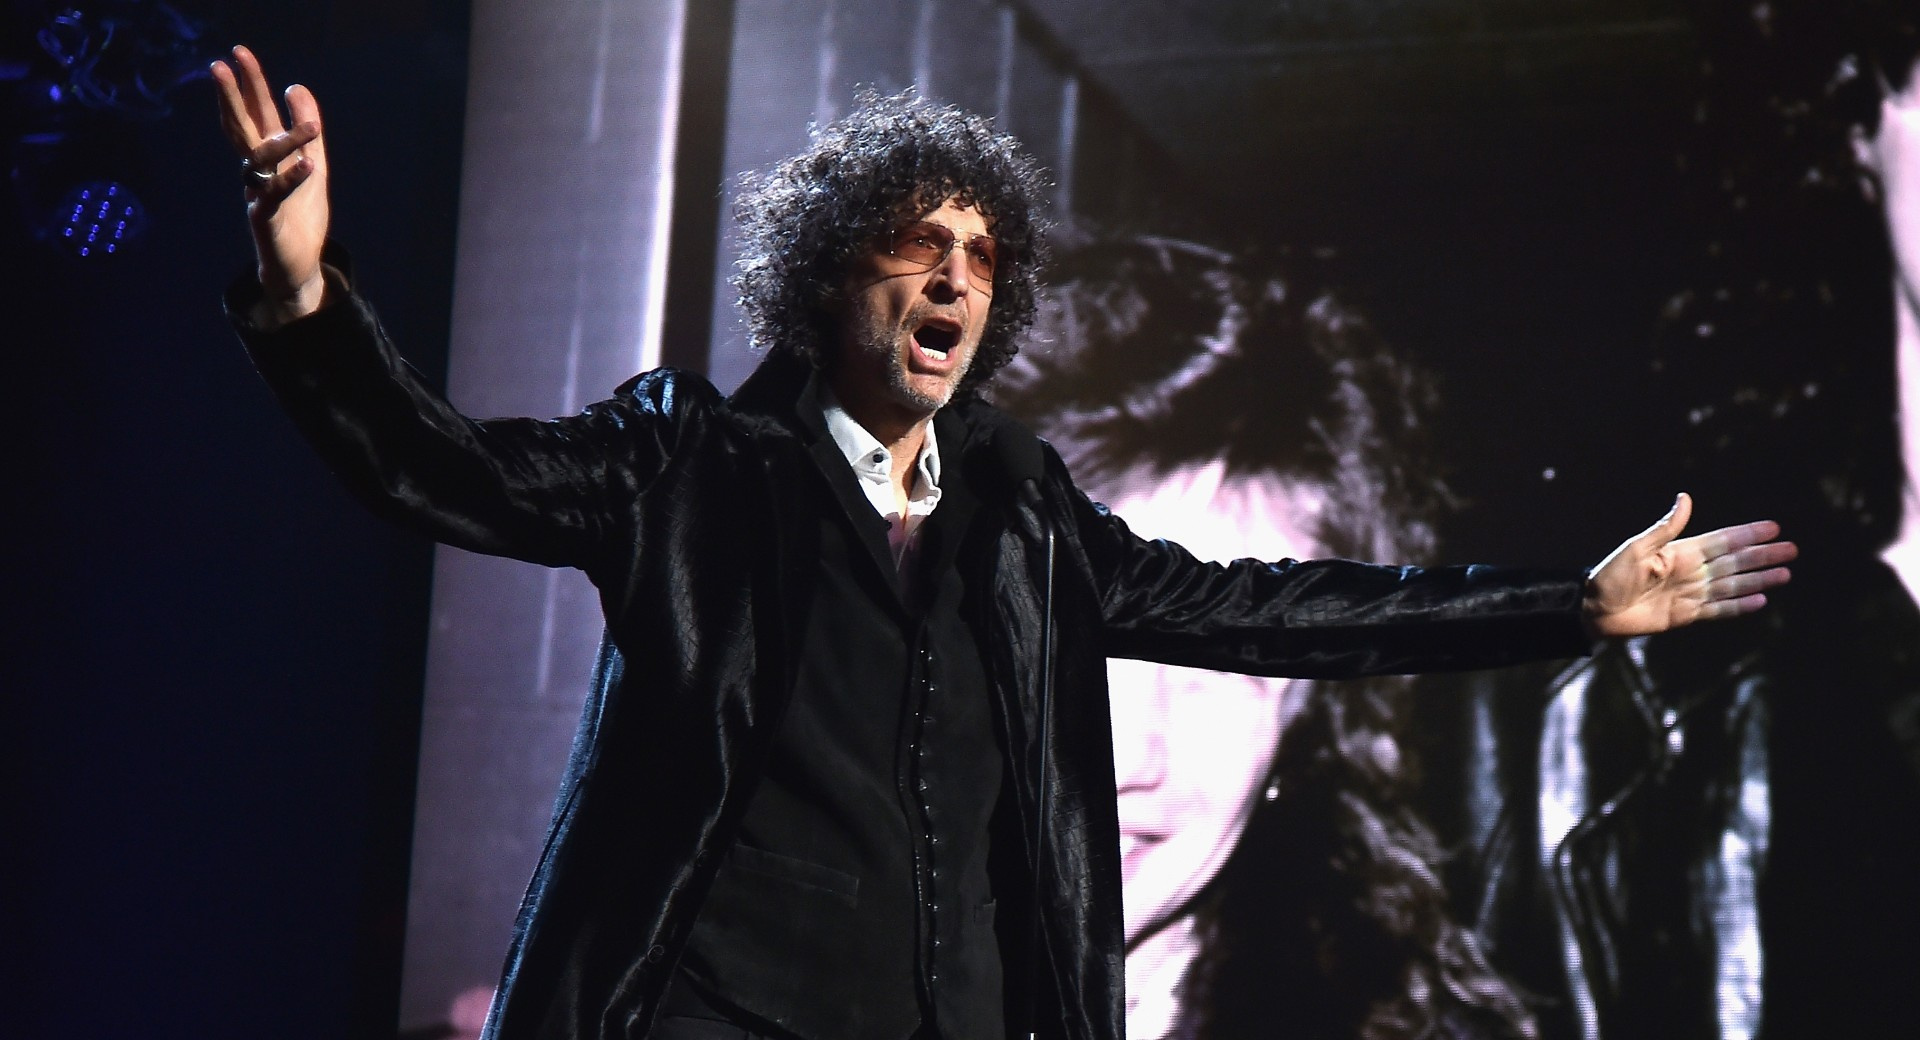 Howard Stern speaks during the 33rd Annual Rock & Roll Hall of Fame Induction Ceremony at Public Auditorium on April 14, 2018 in Cleveland, Ohio. (Theo Wargo/Getty Images For The Rock and Roll Hall of Fame)